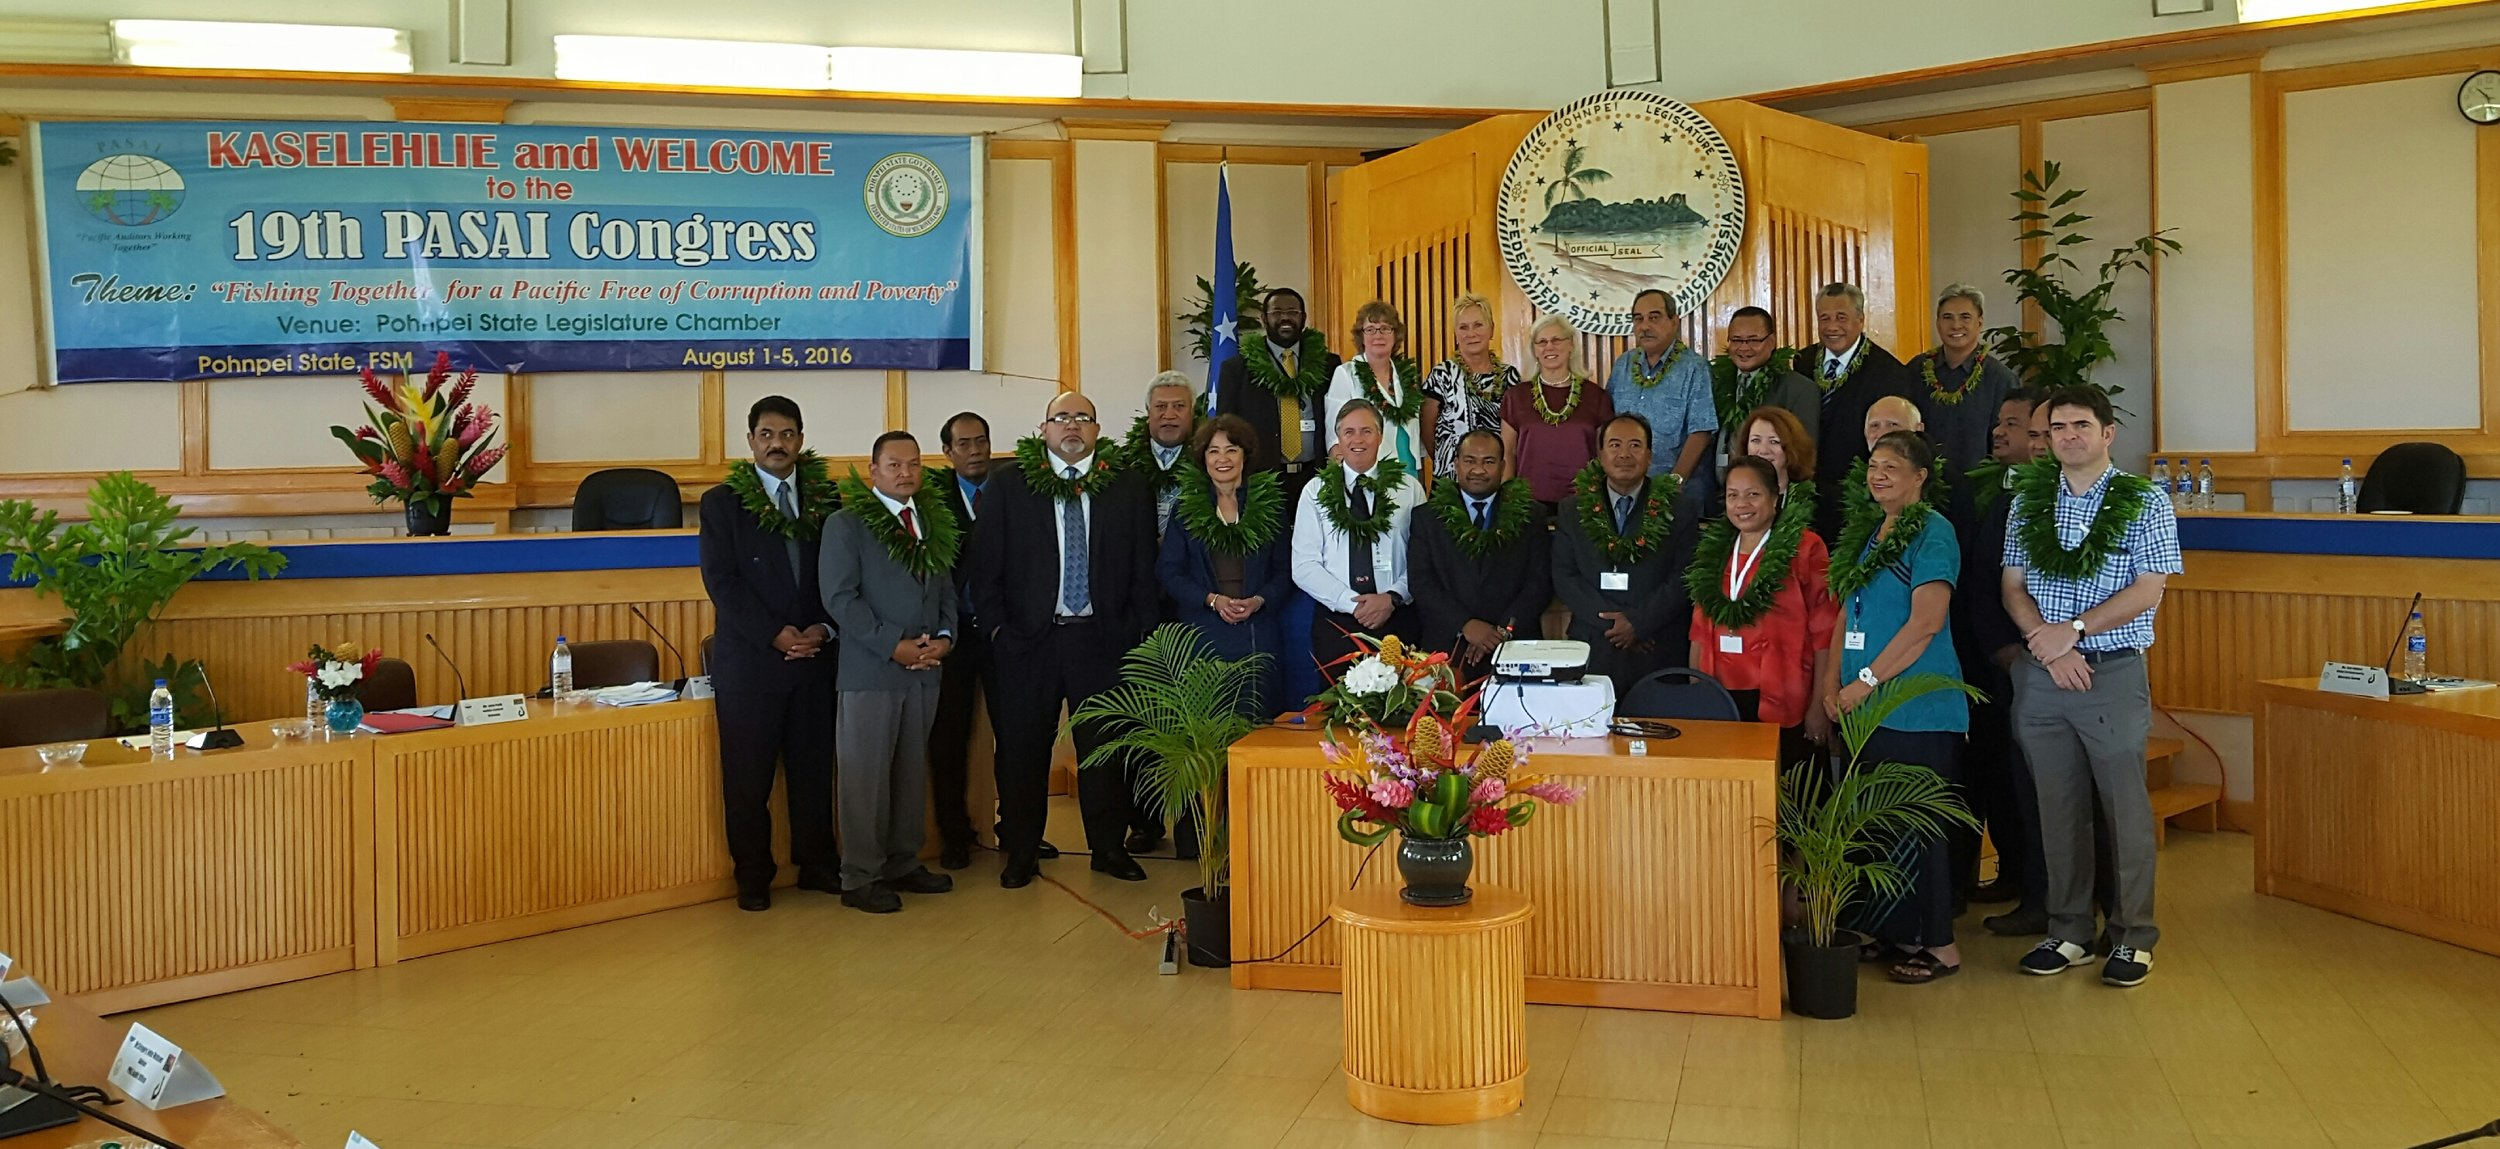 PASAI 19th Congress delegates in Pohnpei, Federated States of Micronesia.